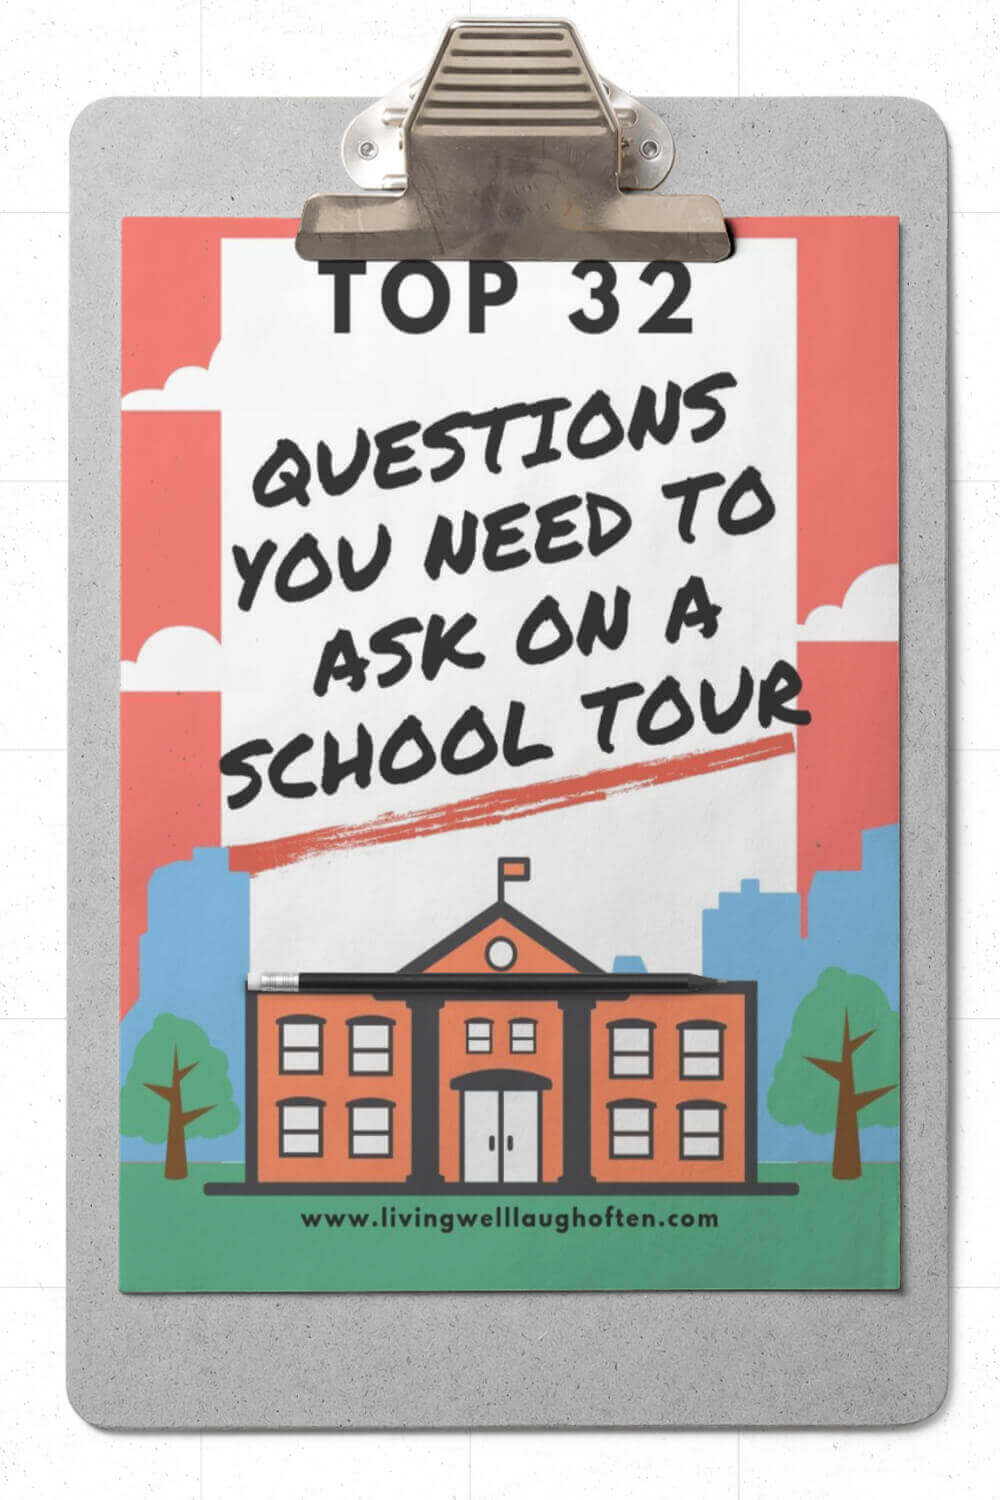 32 Questions You Need To Ask On A School Tour Clipboard